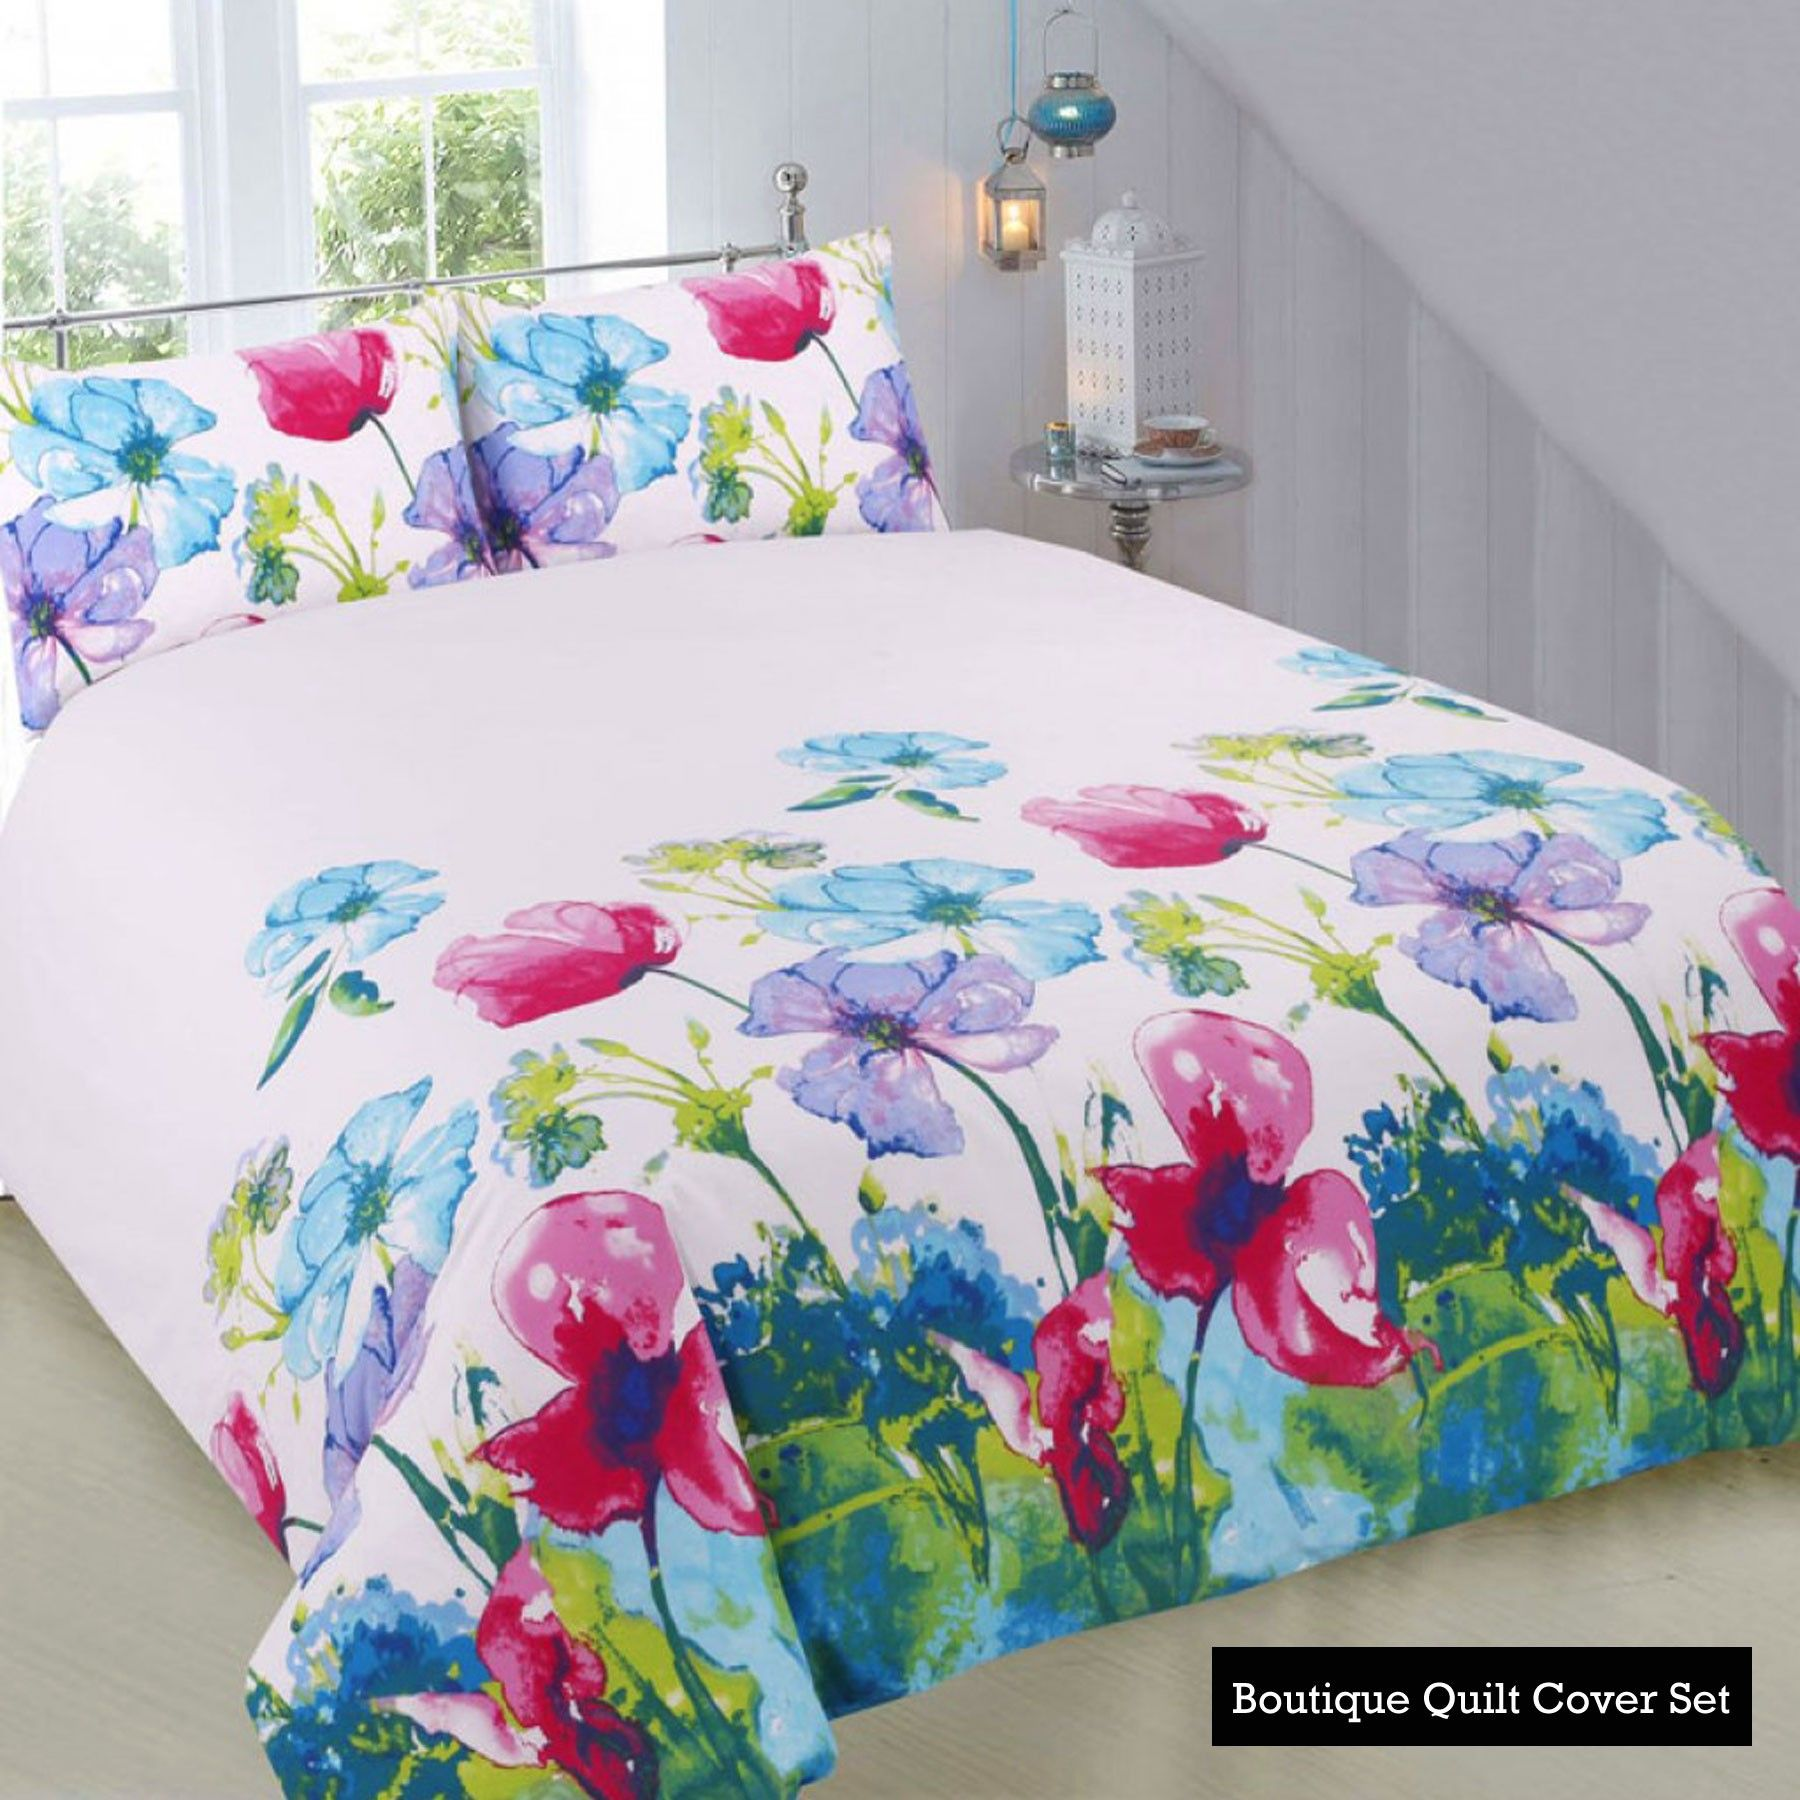 Boutique Quilt Cover Set by Apartmento